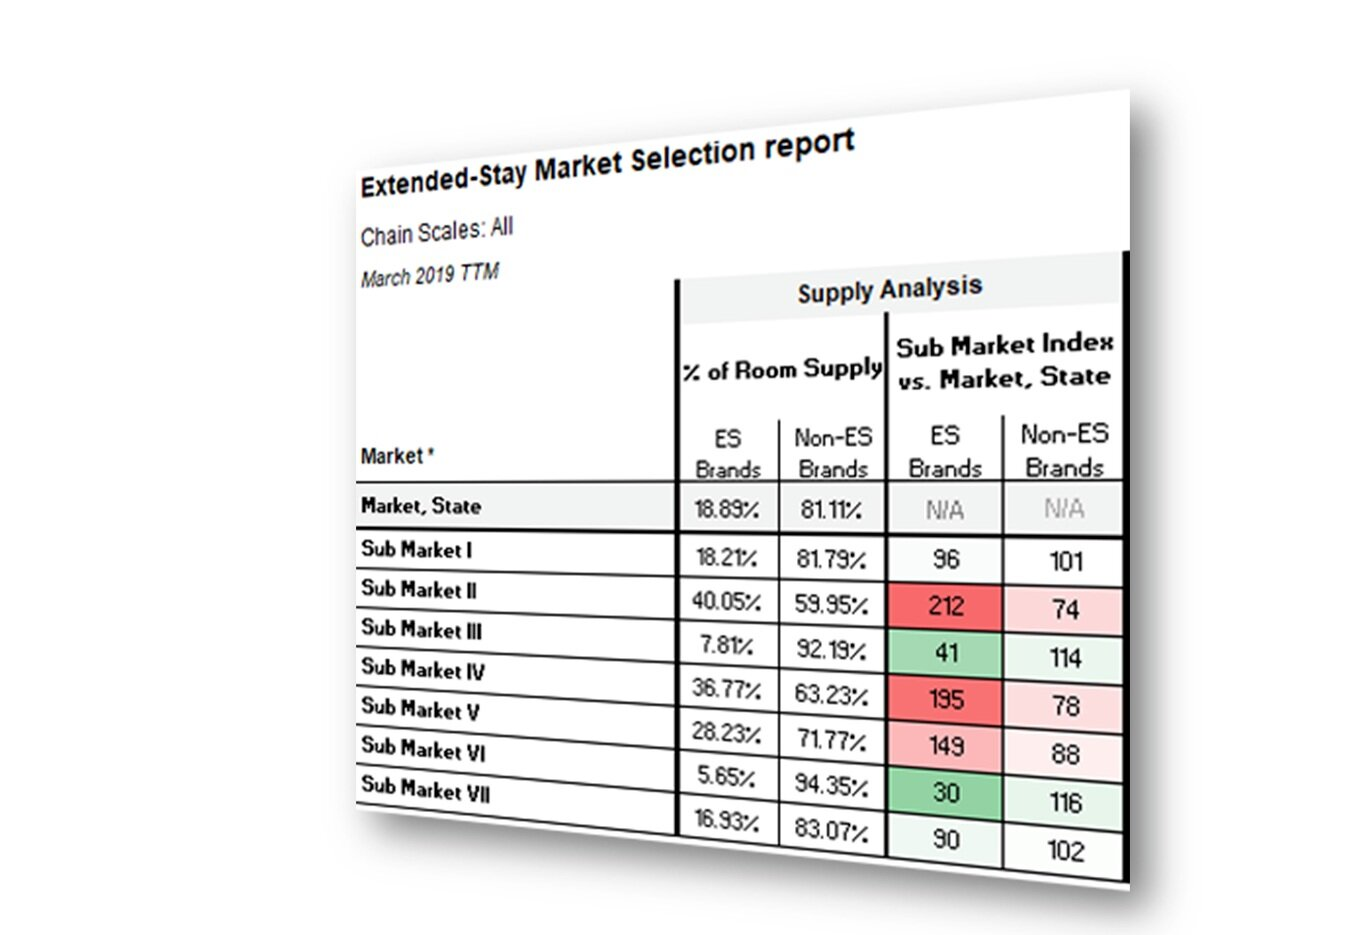 The supply analysis profiles extended-stay hotel and non-extended stay hotel supply. This information for each submarket is then indexed against the total market performance to illustrate supply by submarket. -